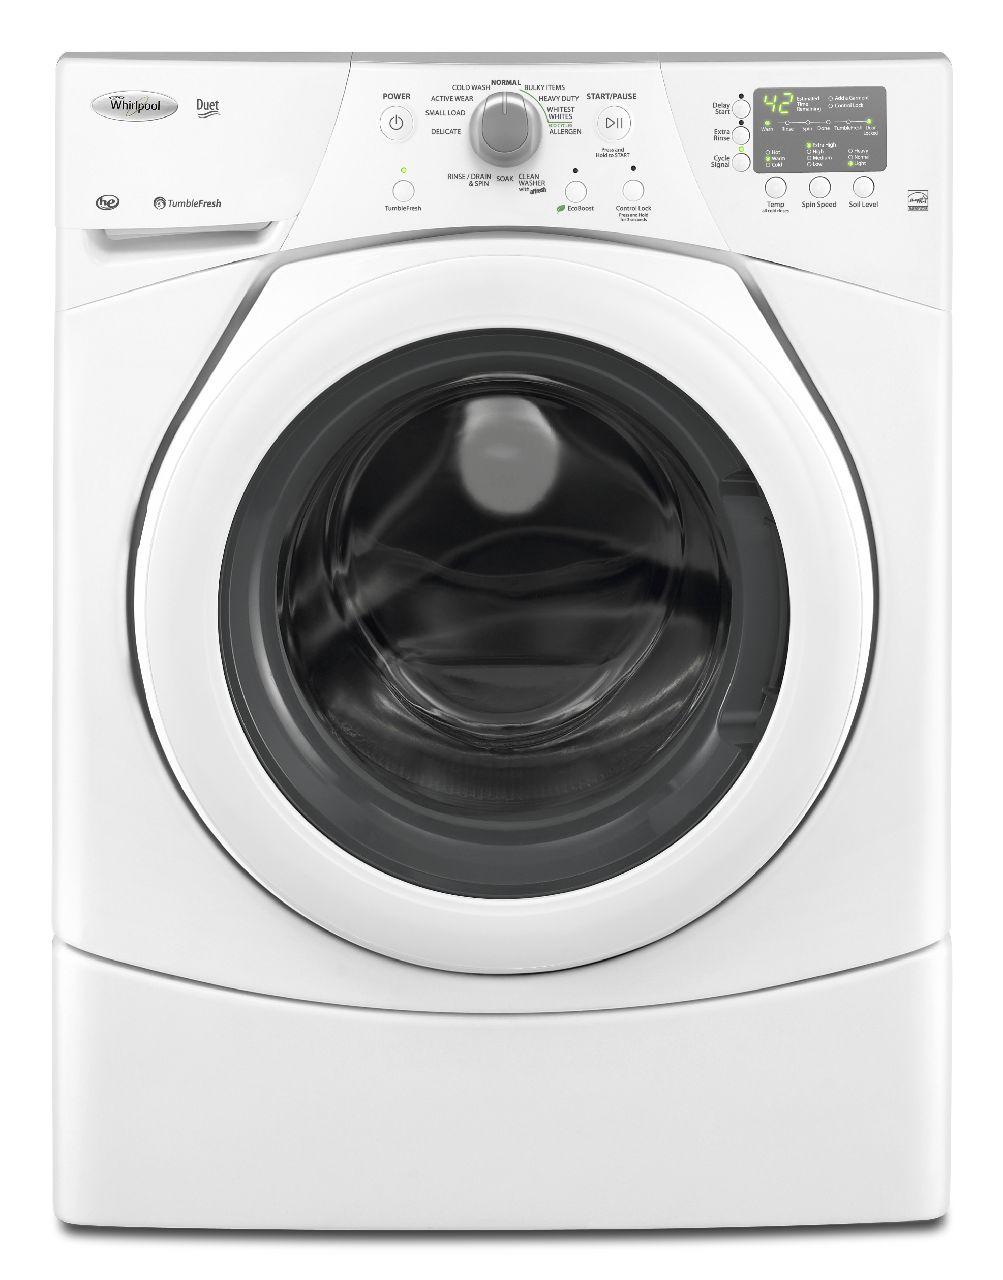 Whirlpool Washing Machine: Model WFW9151YW00 Parts and Repair Help